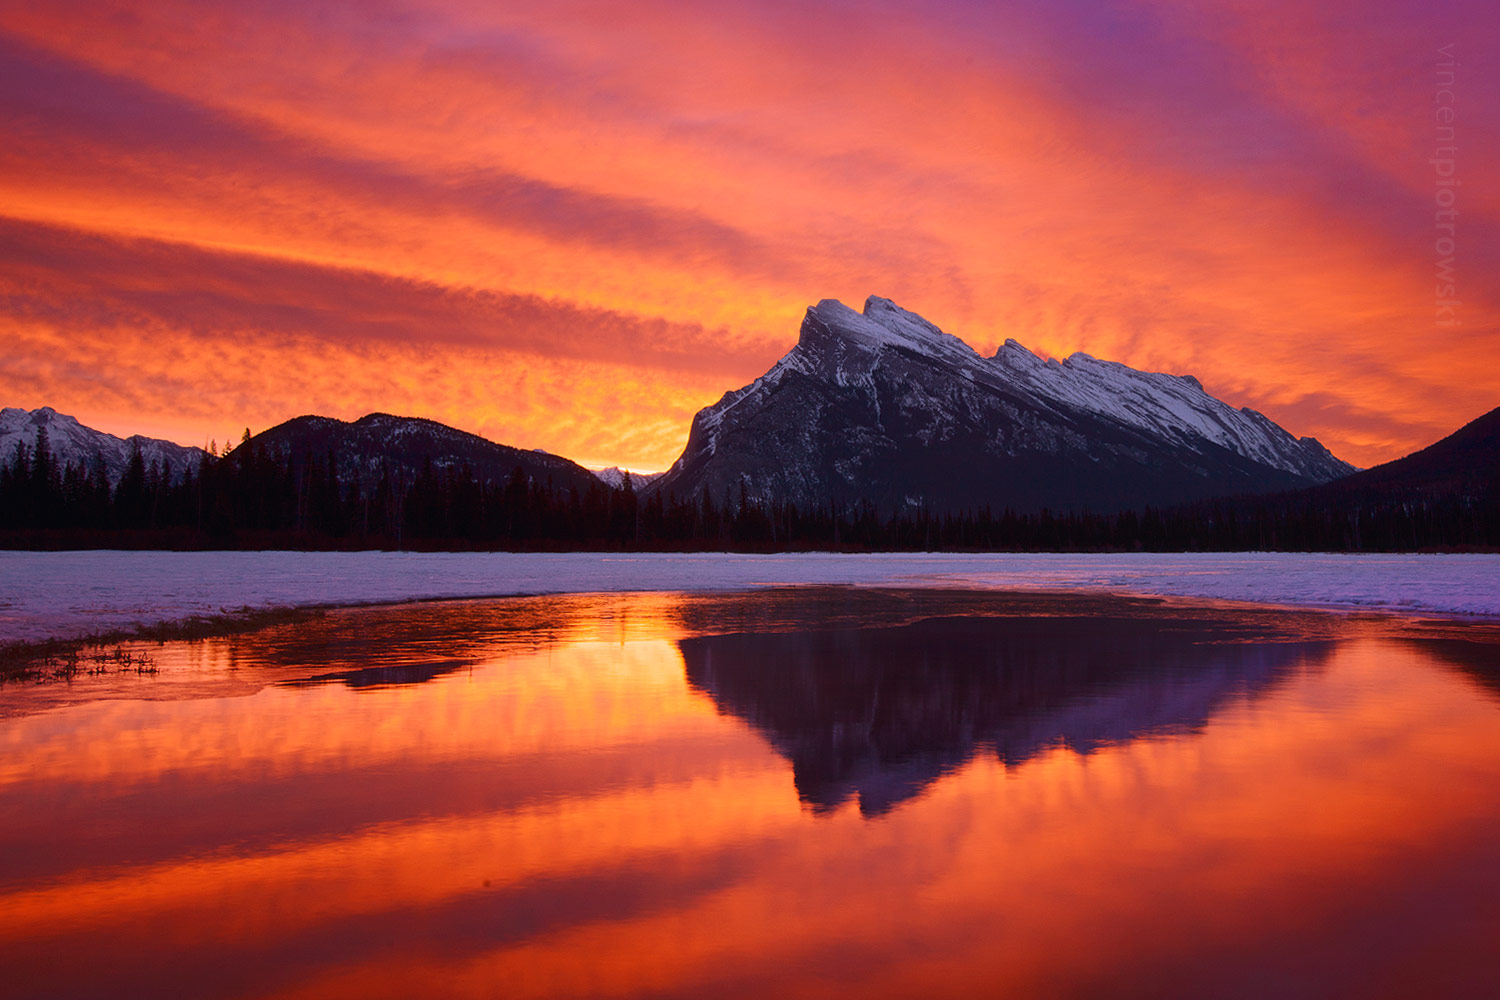 Sunrise captured on Vermillion Lakes with Mt Rundle reflected in the water with intense colours.